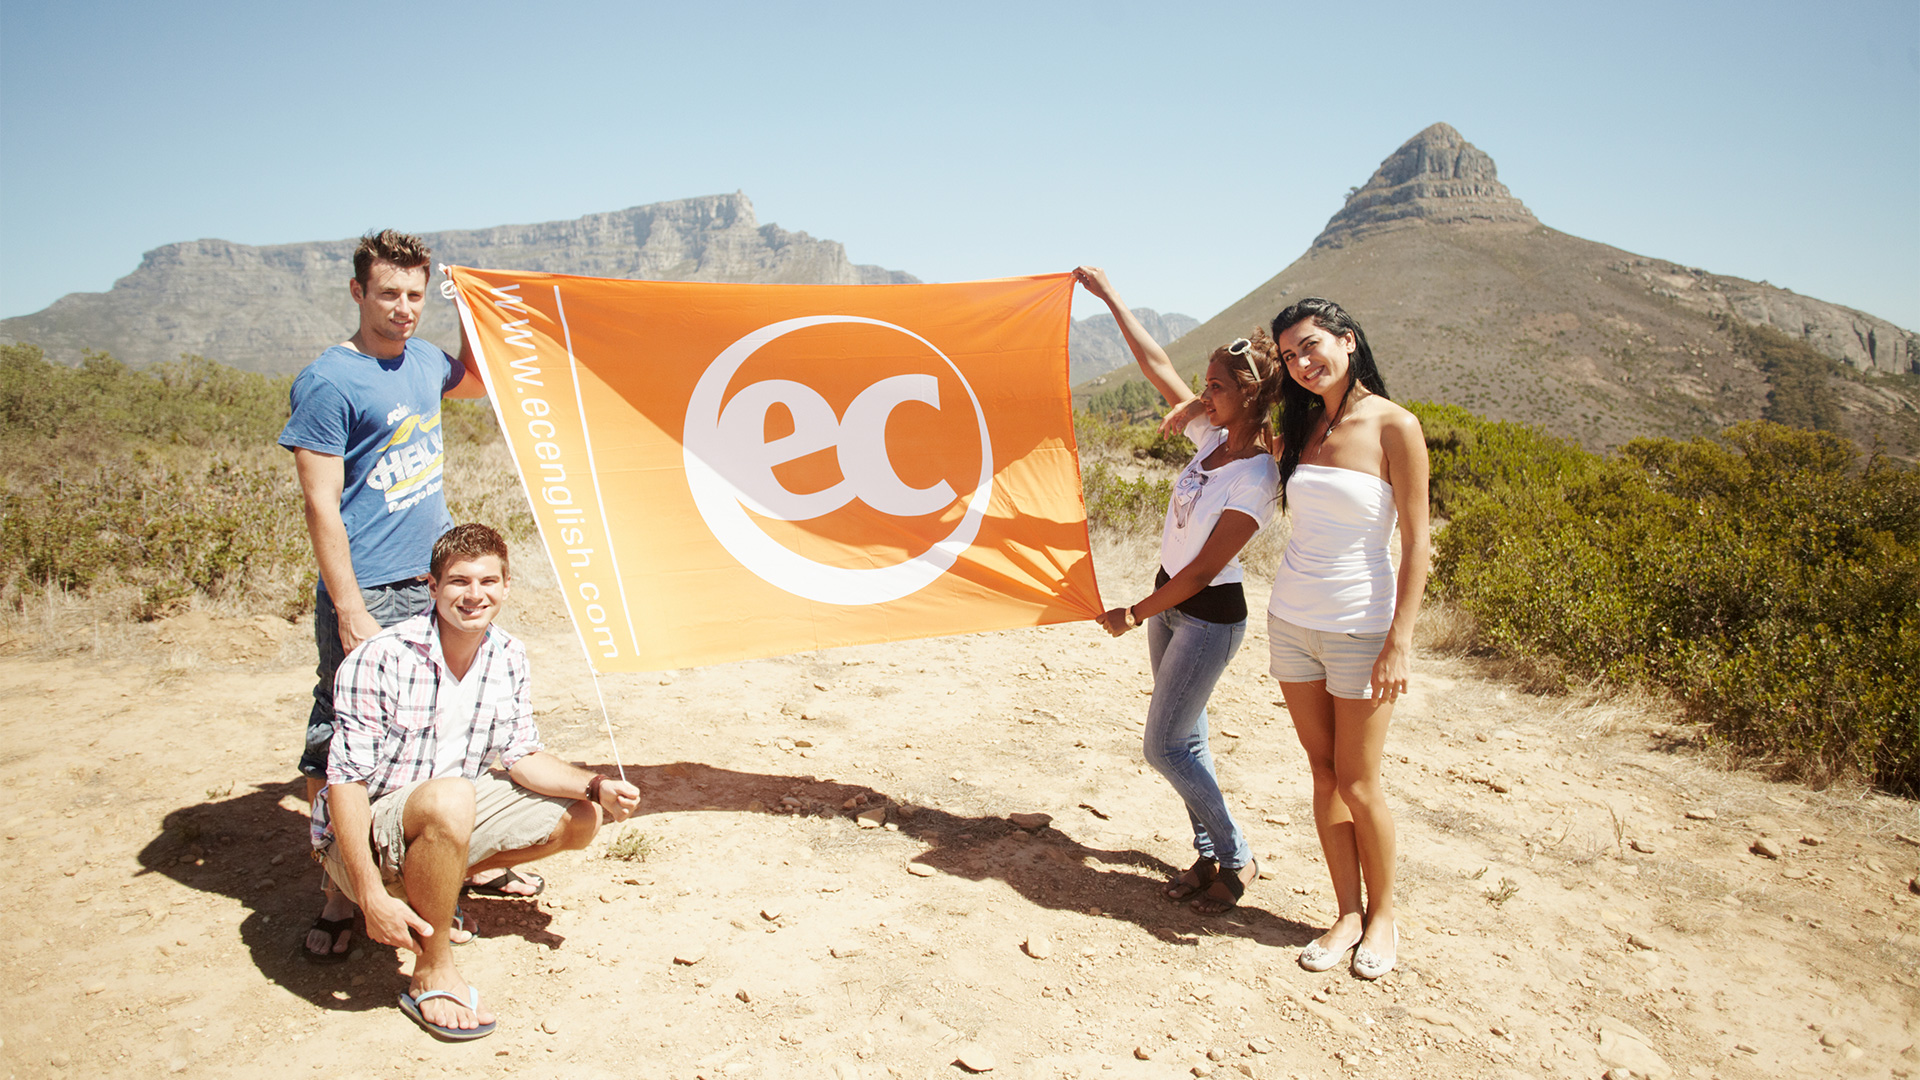 eccapetown-lifestyle 0127_cropped.jpg